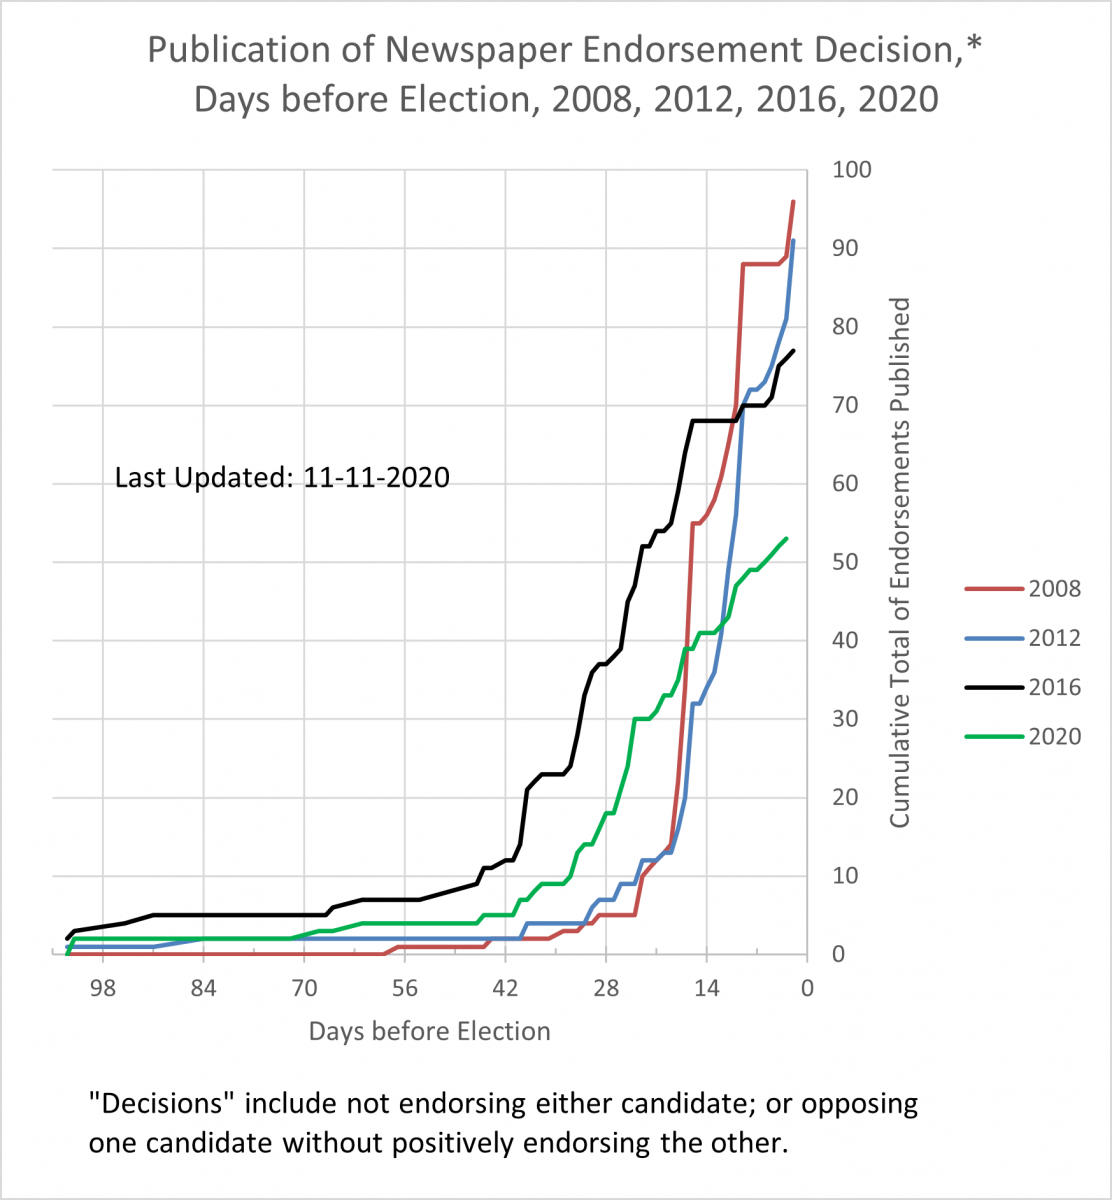 Graph of proportion of newspapers making endorsements showing steep dropoff from prior elections